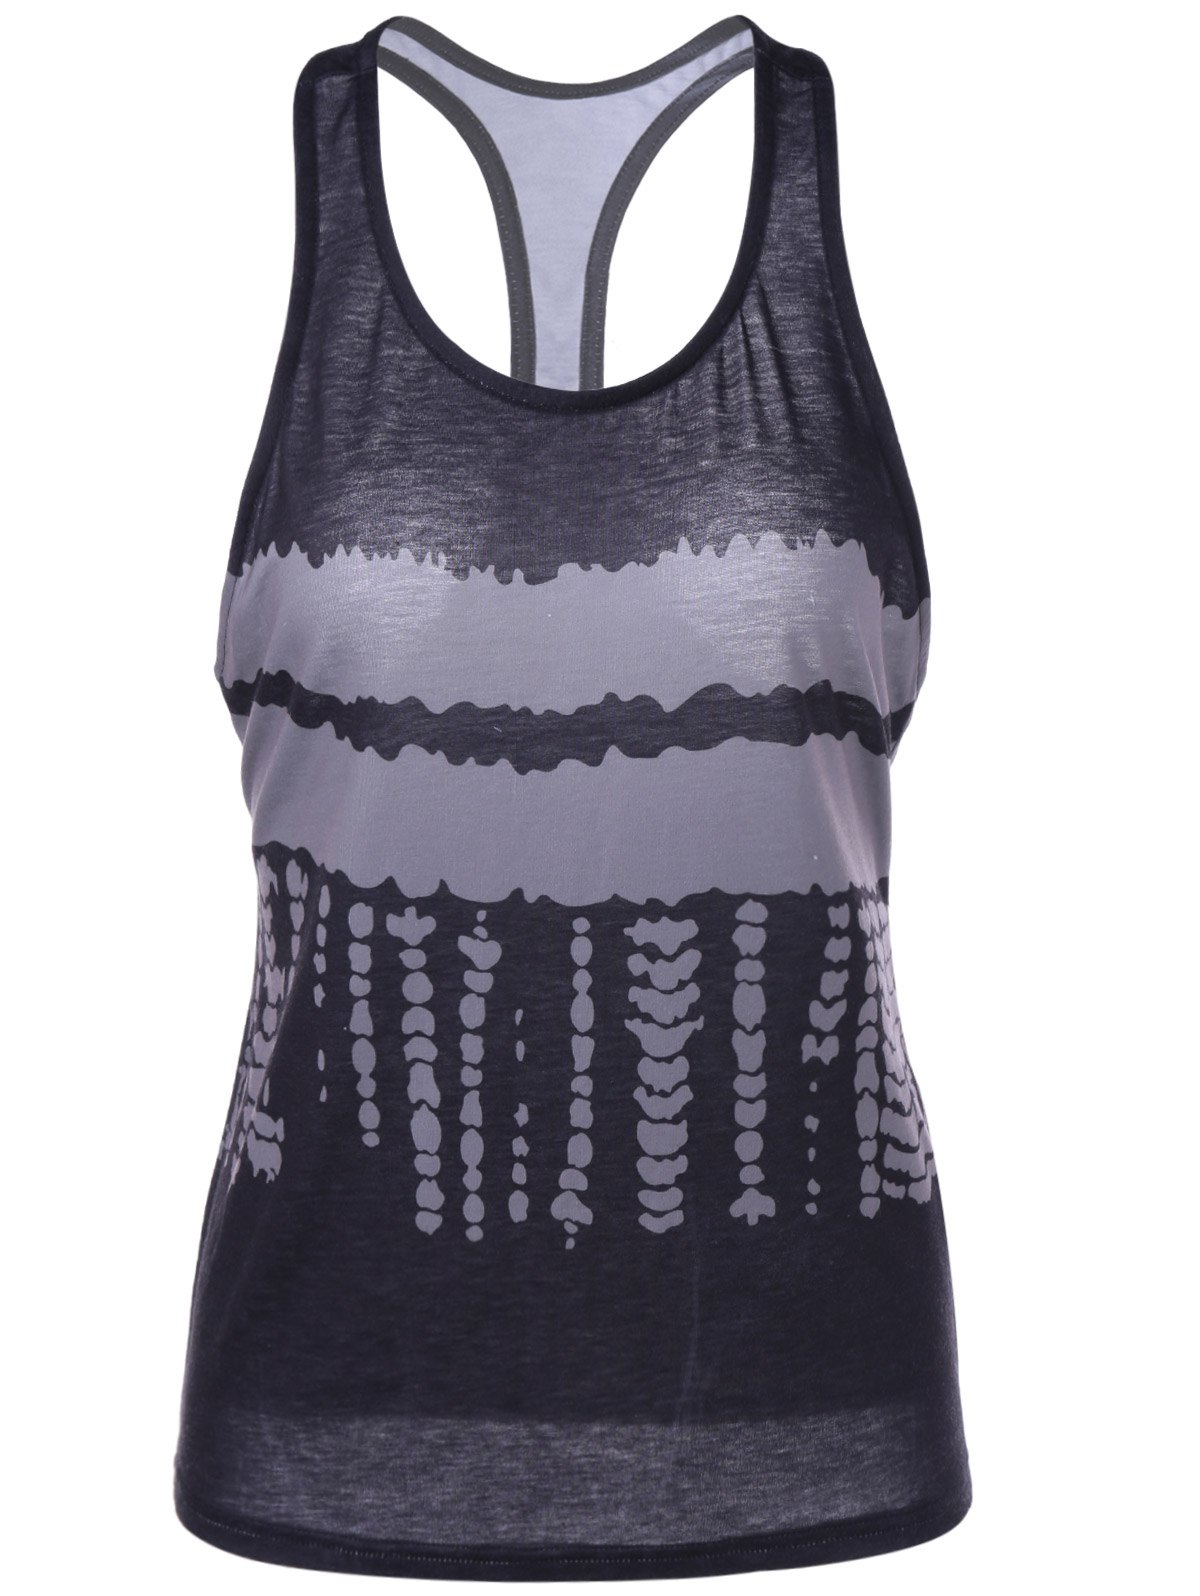 Fashionable Sleeveless U-Neck Racerback Tank Top For Women - INK PAINTING L